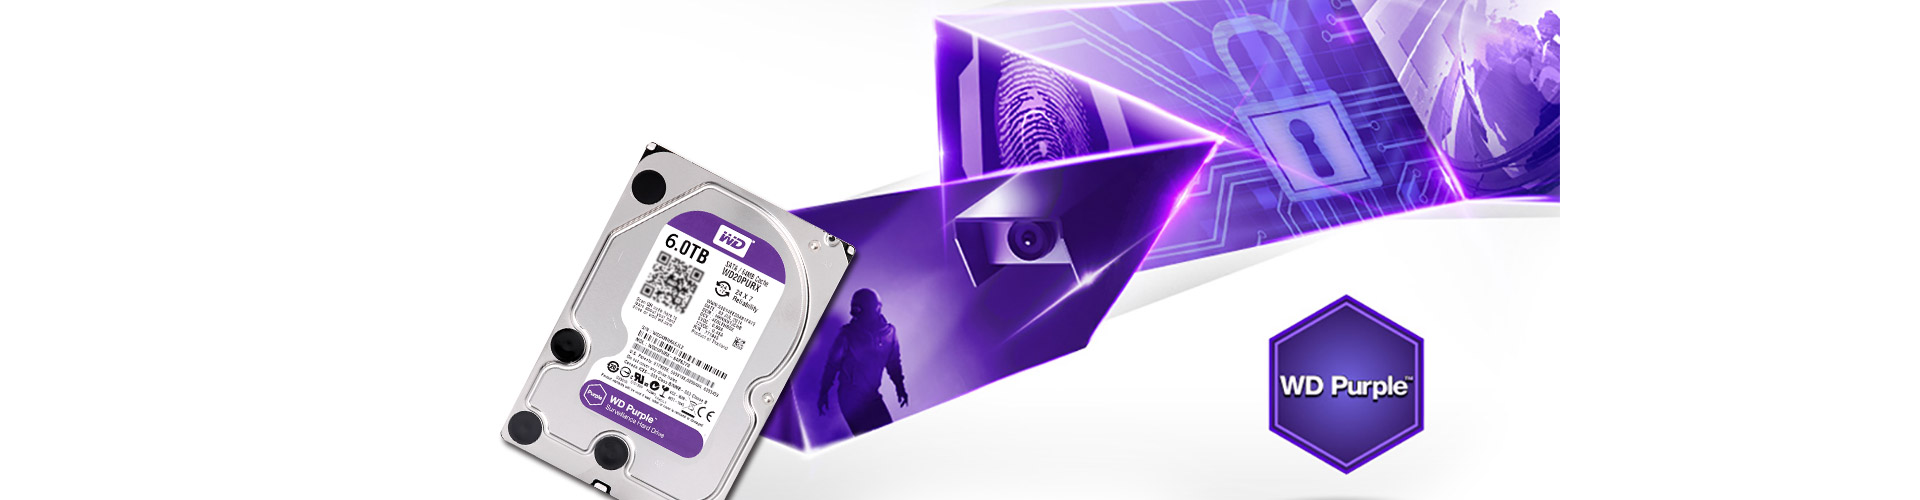 Customized WD Purple, reliable performance